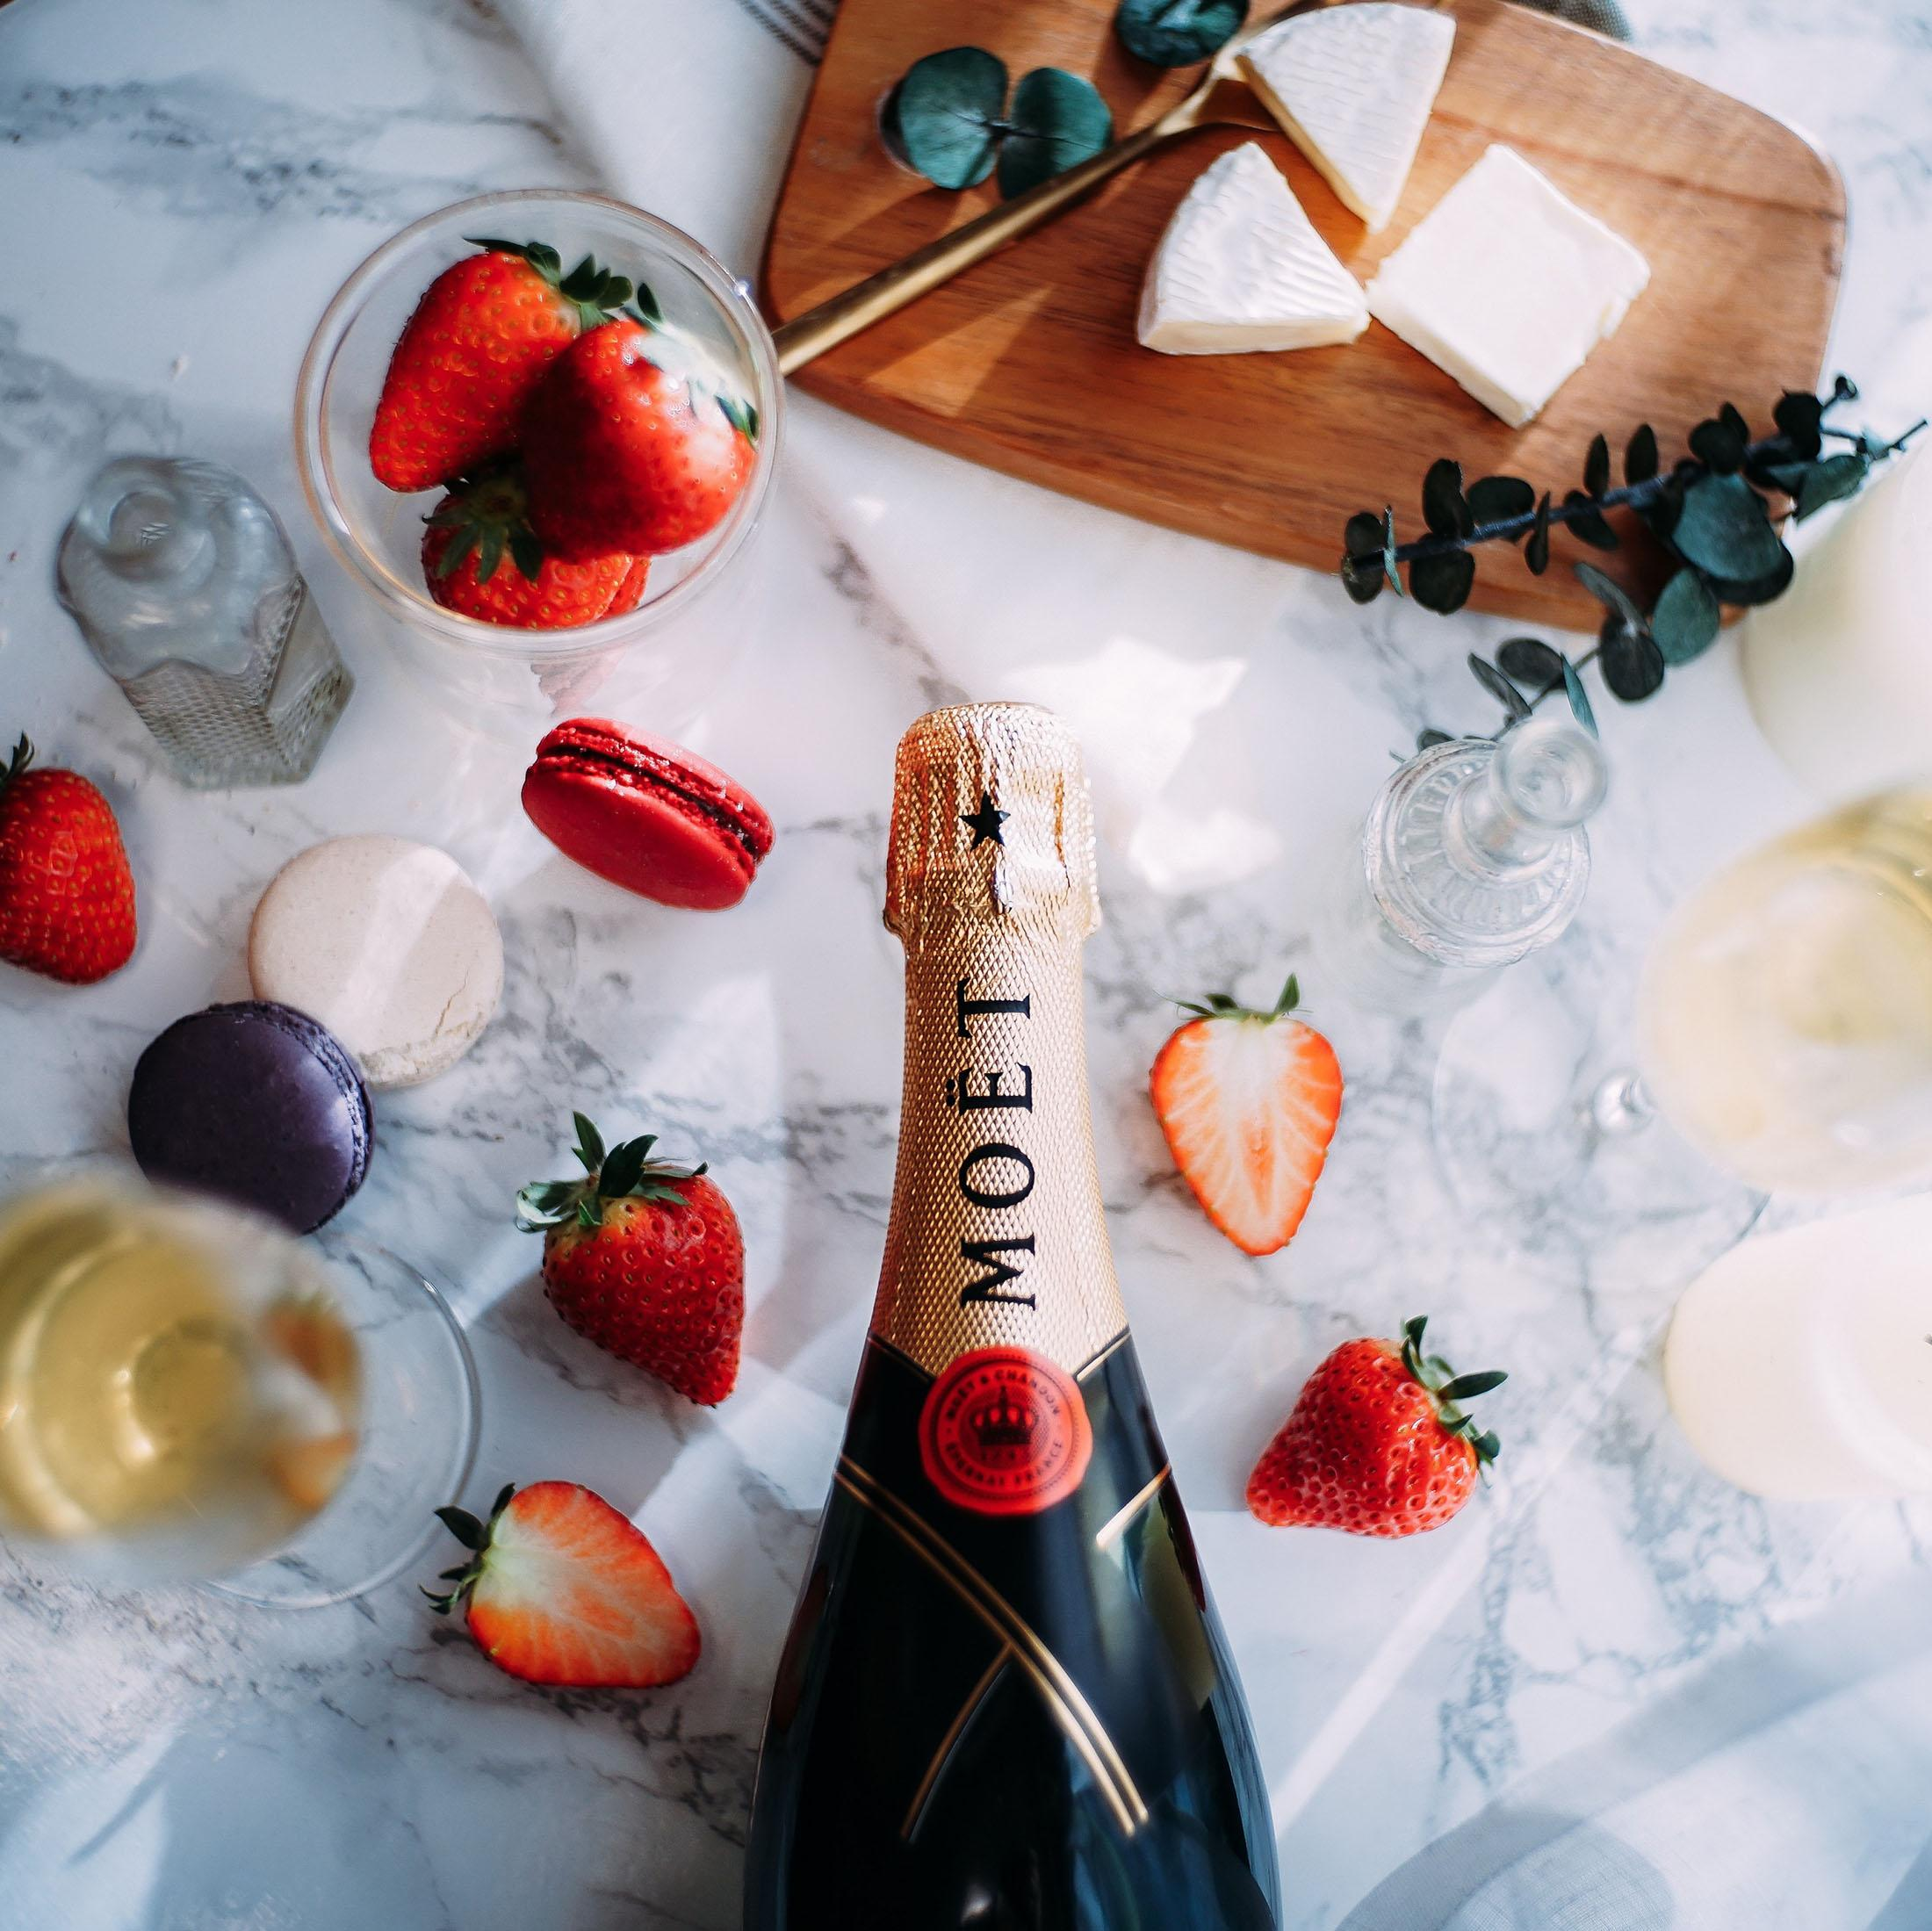 Moet and strawberries